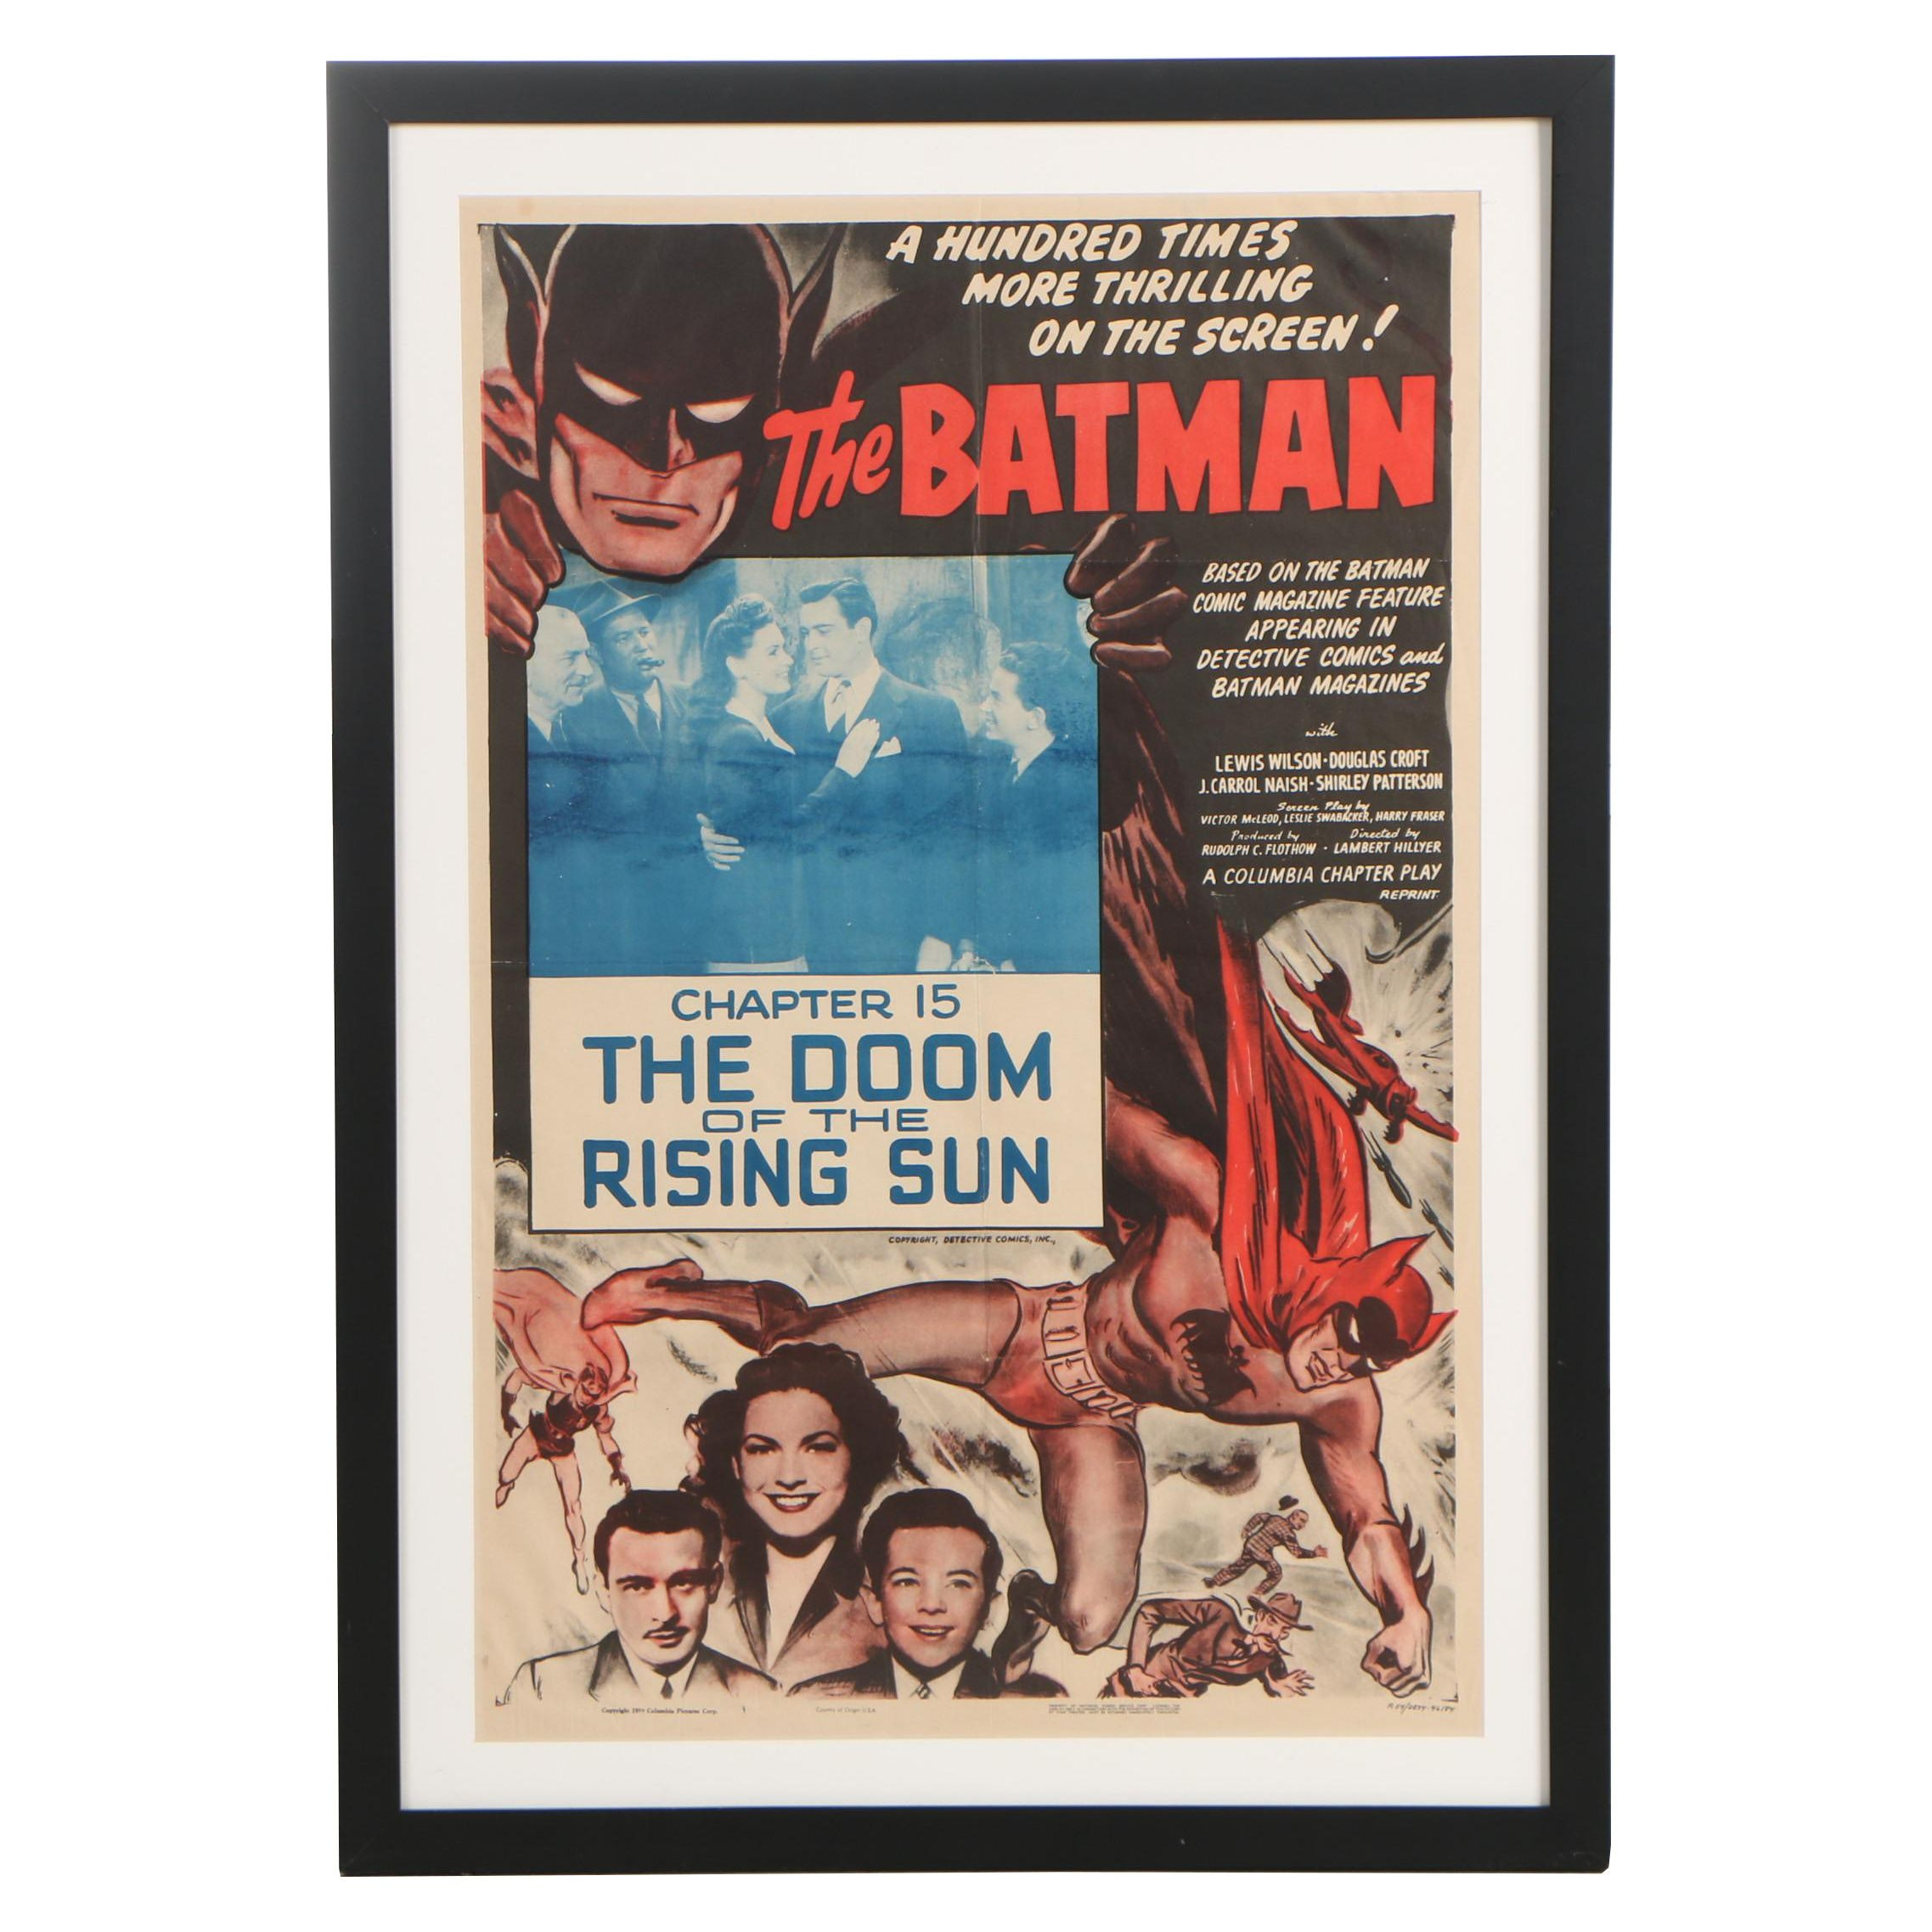 "Theatrical Re-Release One-Sheet Poster ""The Batman"", 1954"